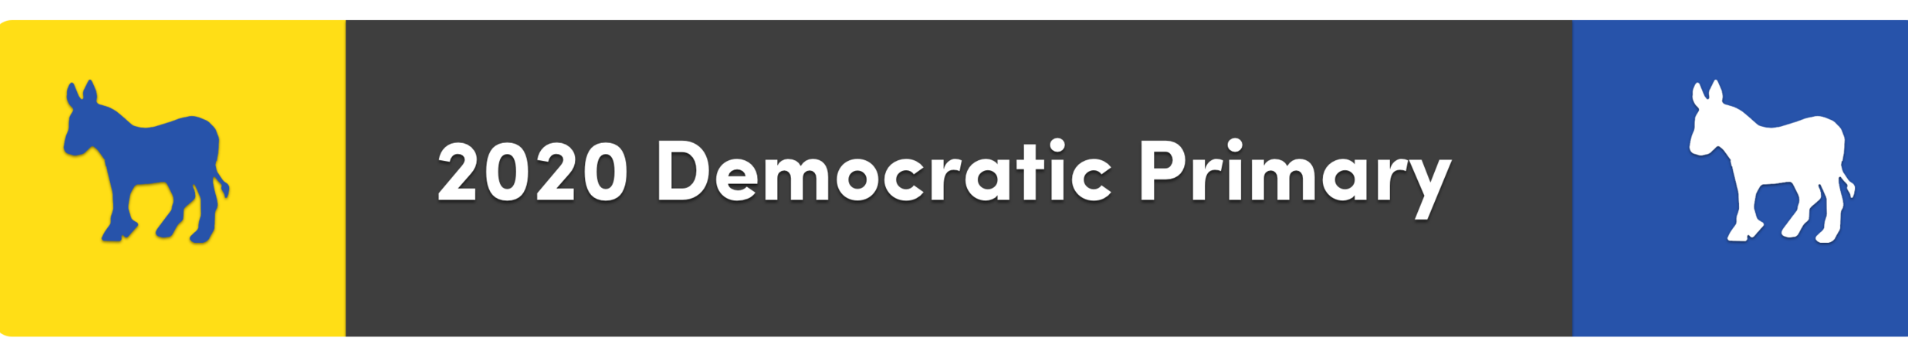 Follow the  polls and access campaign websites  of the 20 plus Dem candidates on BuzzFlash.